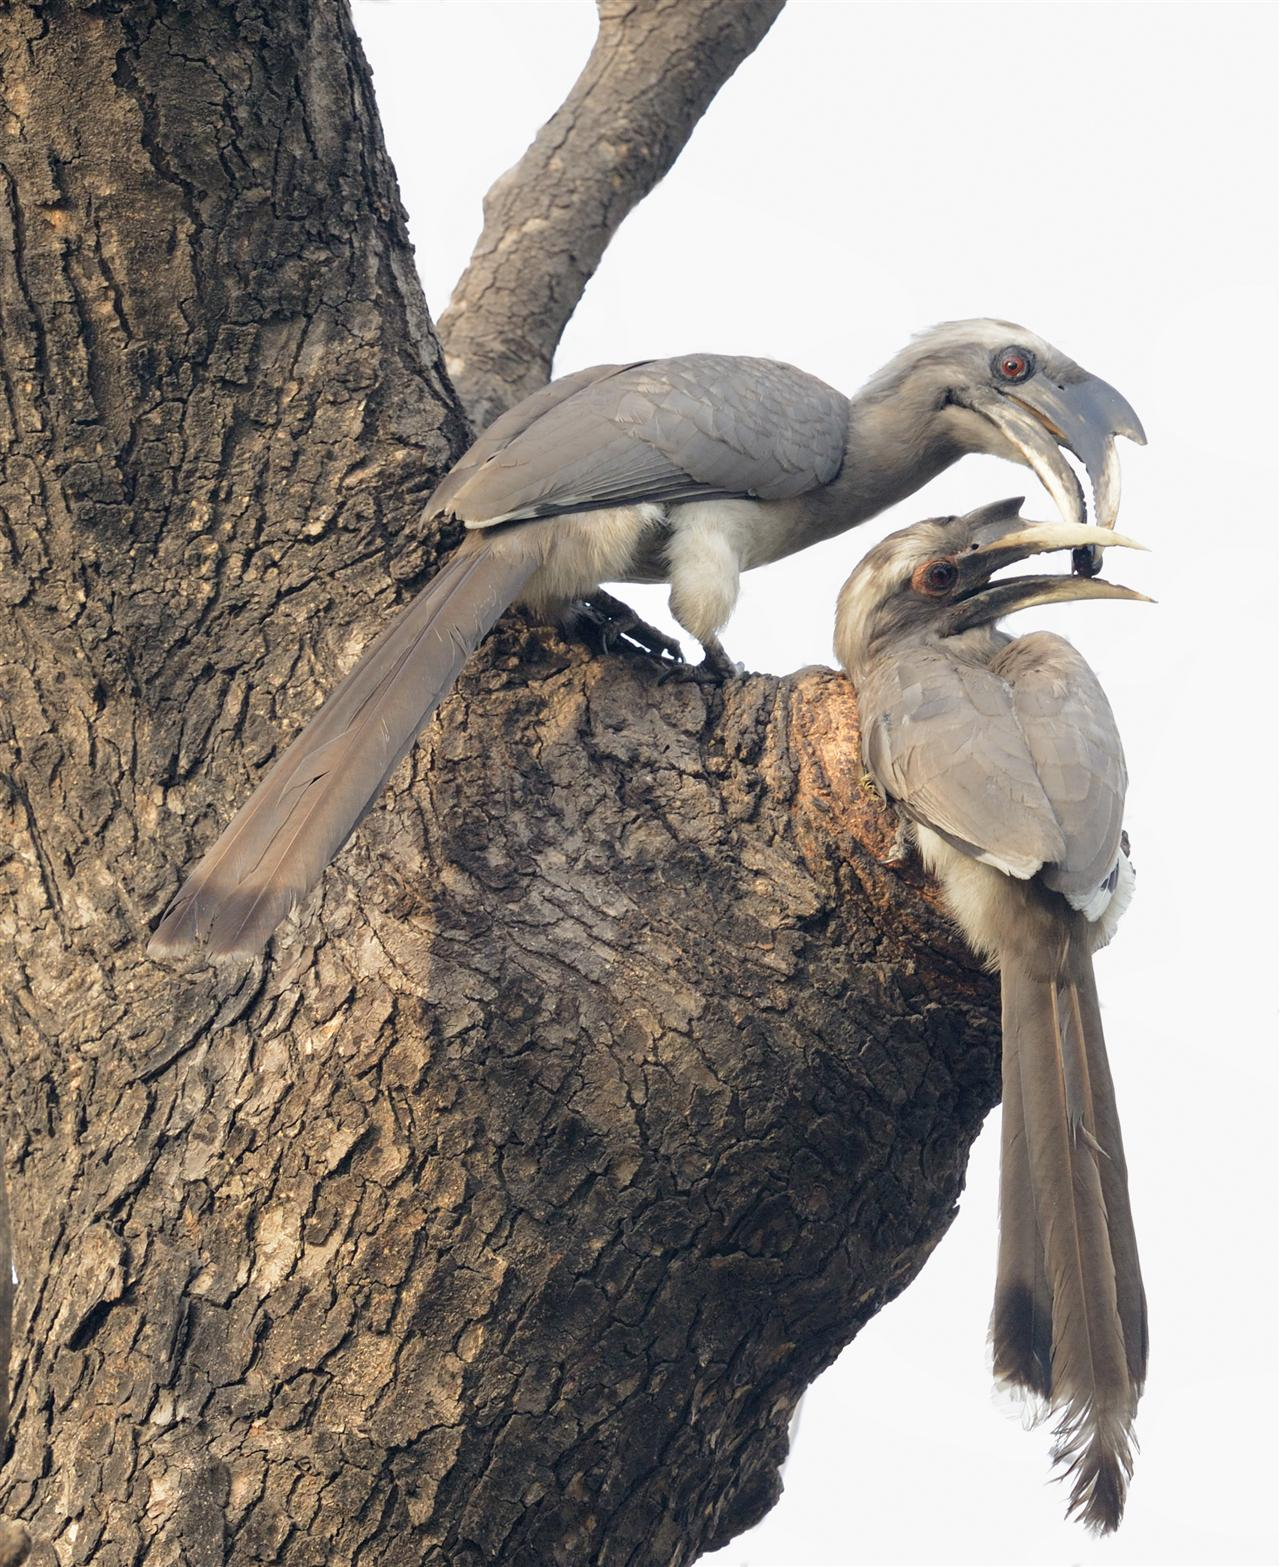 'In courtship perched over nest' - They are very common in the President's Estate.